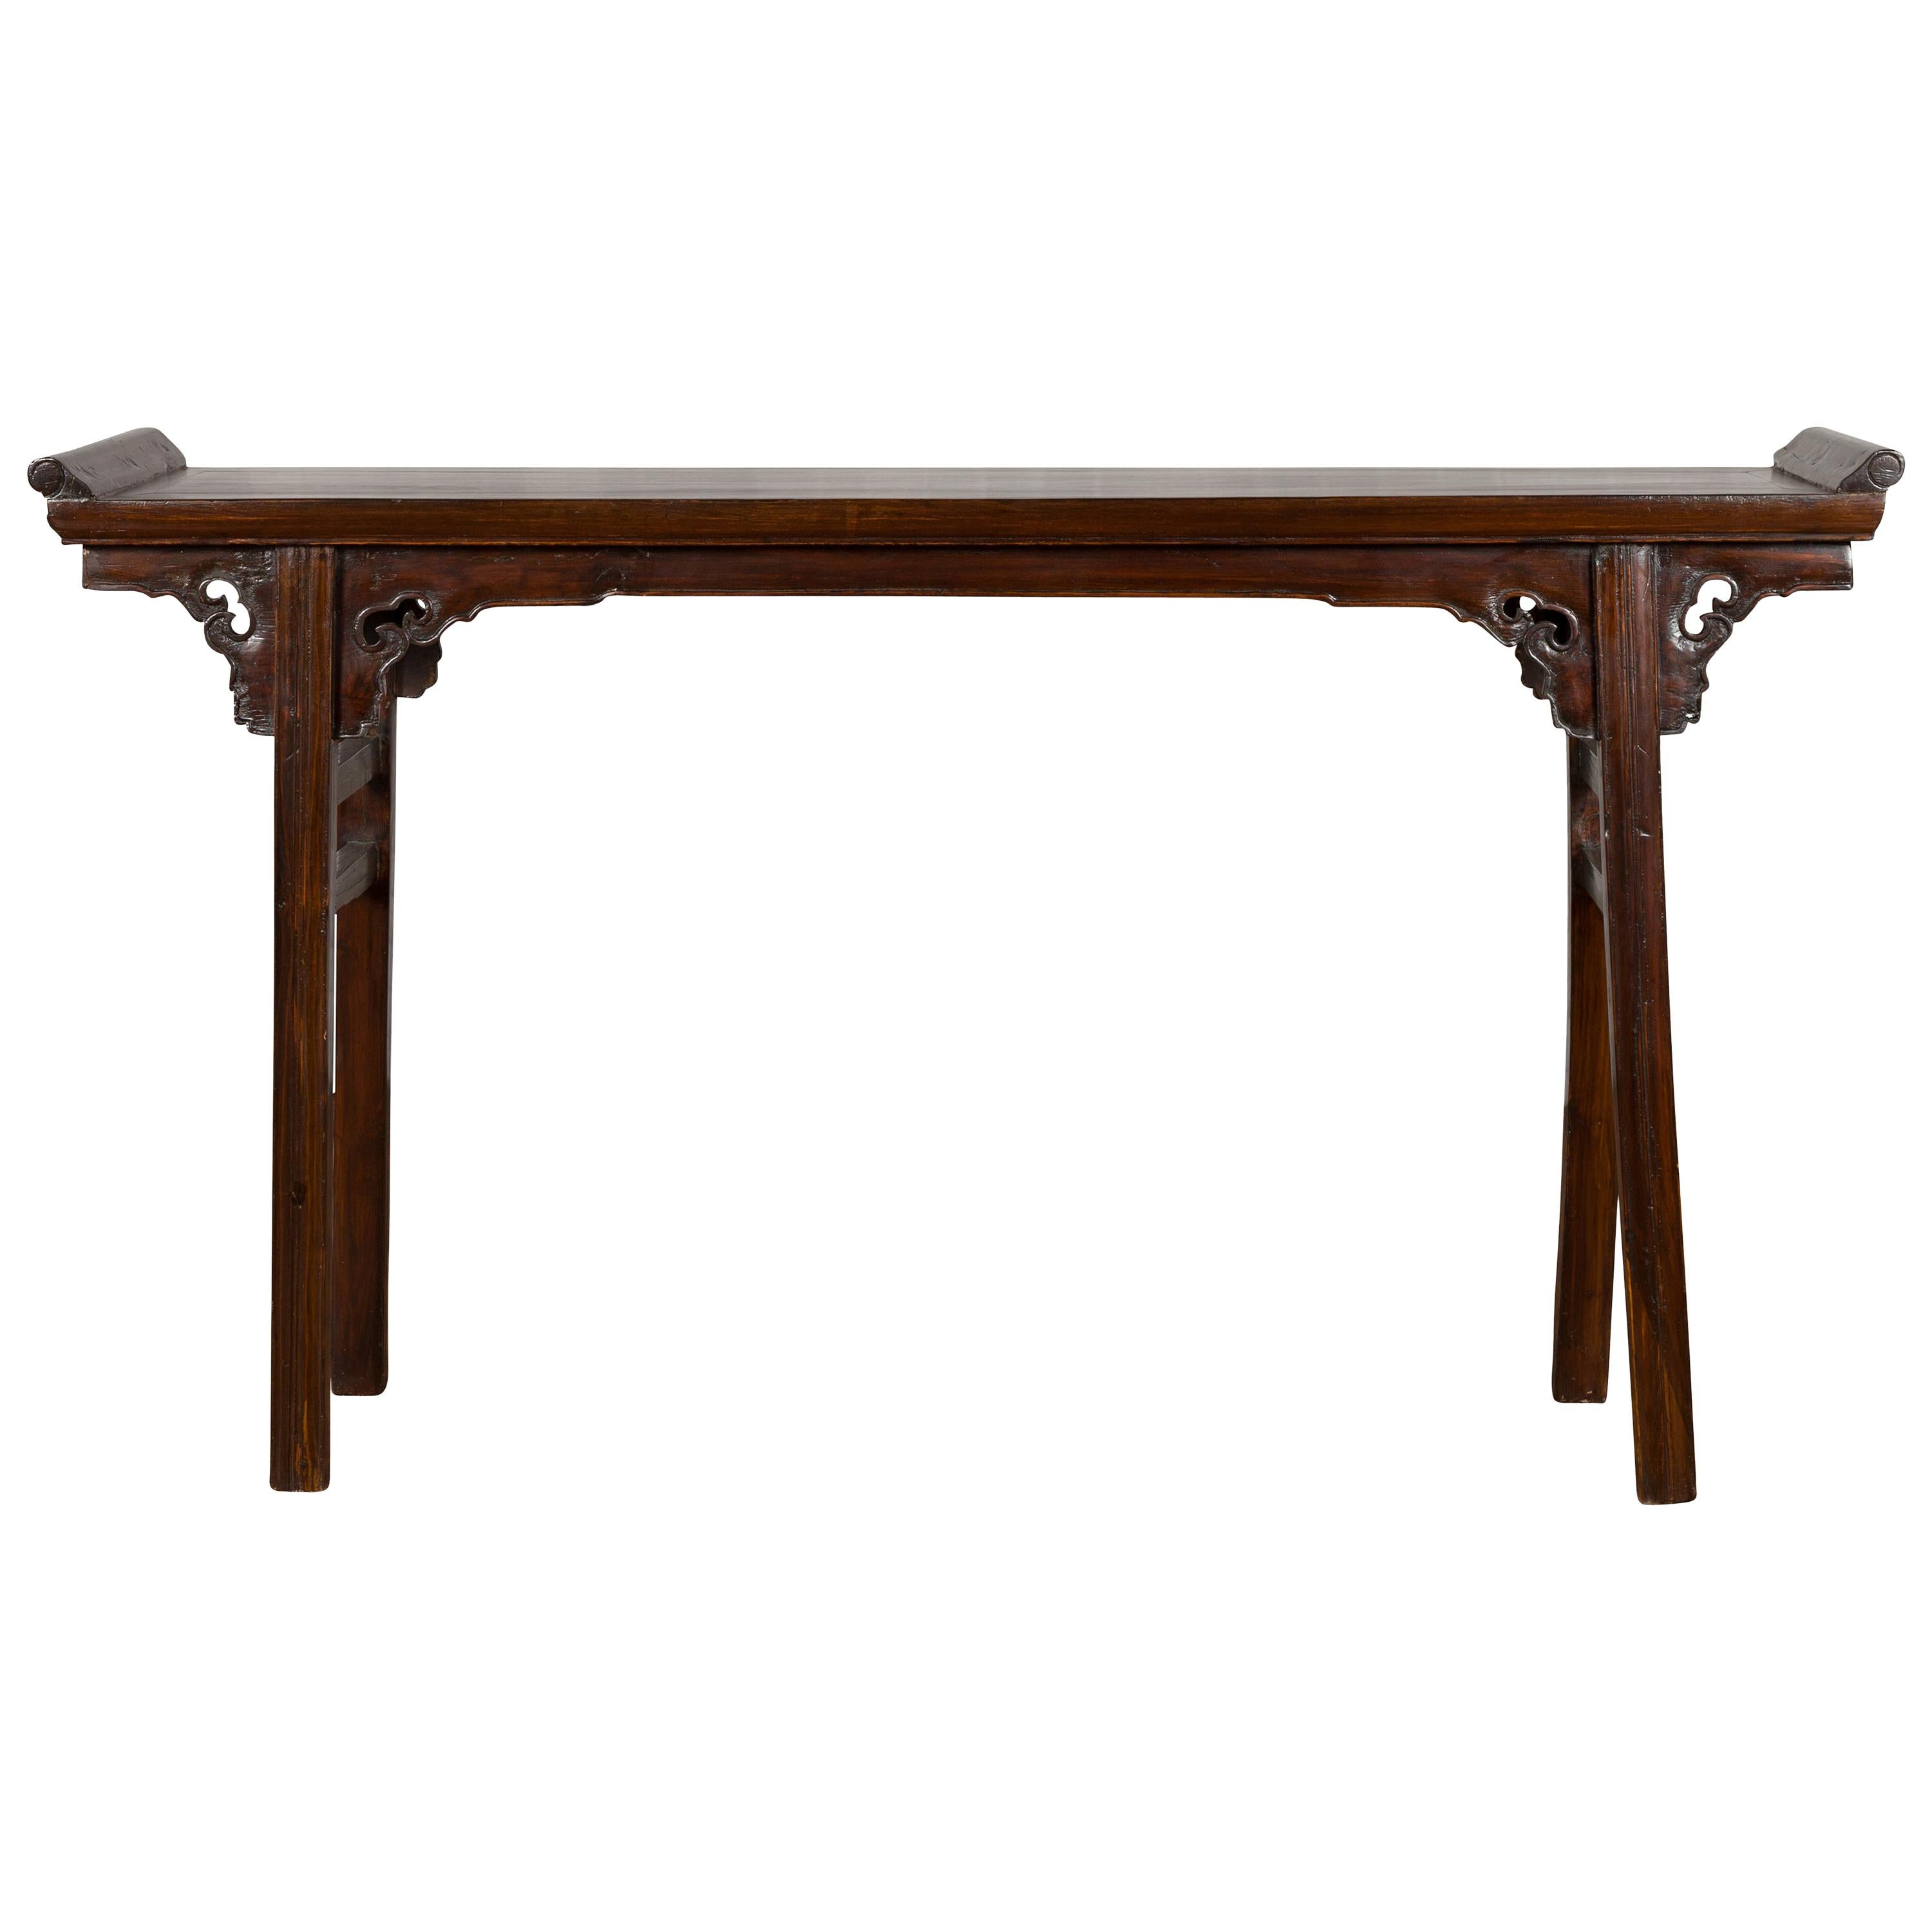 Chinese 19th Century Qing Dynasty Altar Console Table with Carved Spandrels